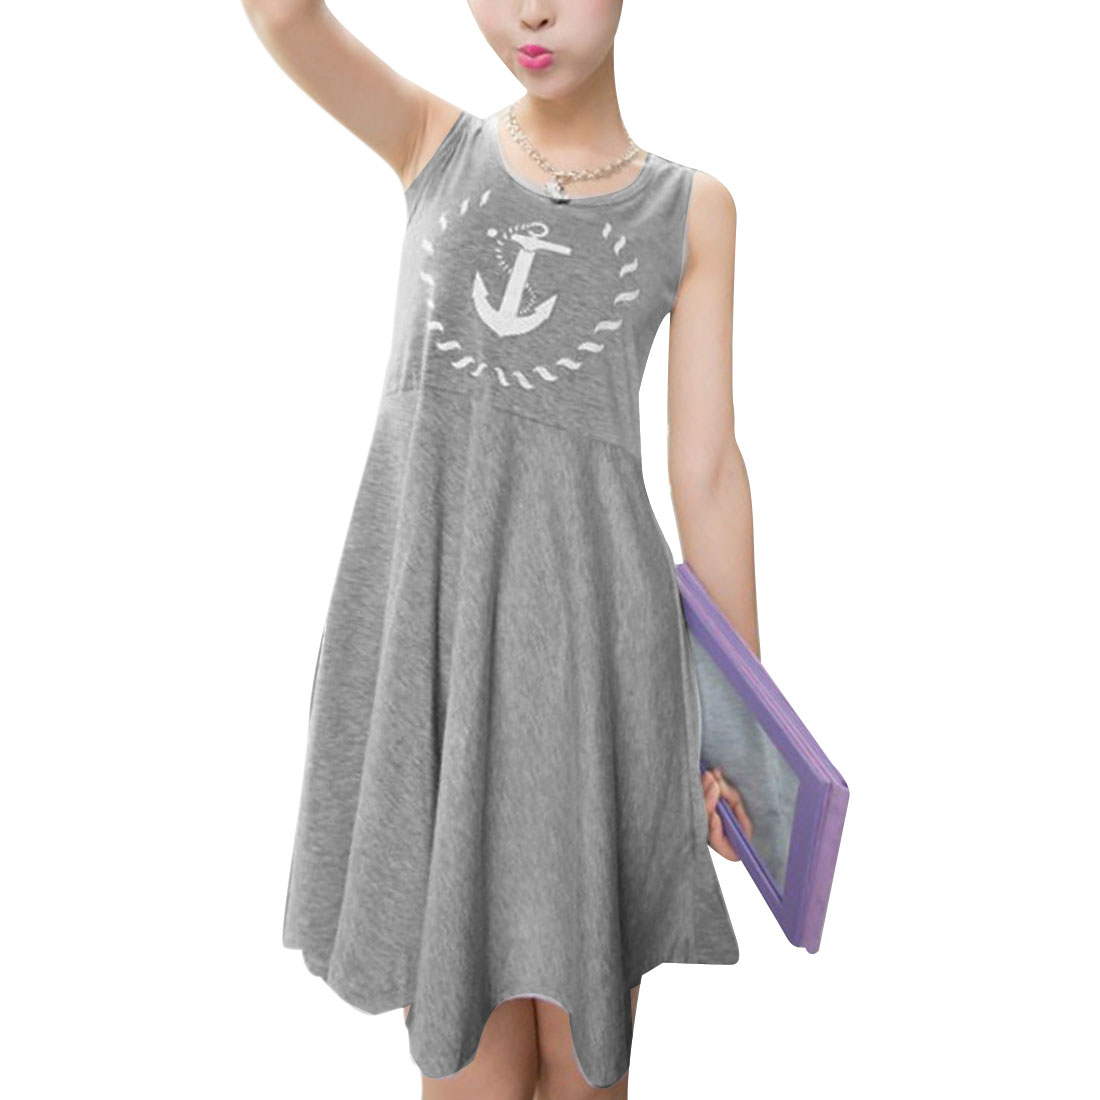 Ladies Anchor Mark Design Elegant Chic Splice Dress Light Gray XS